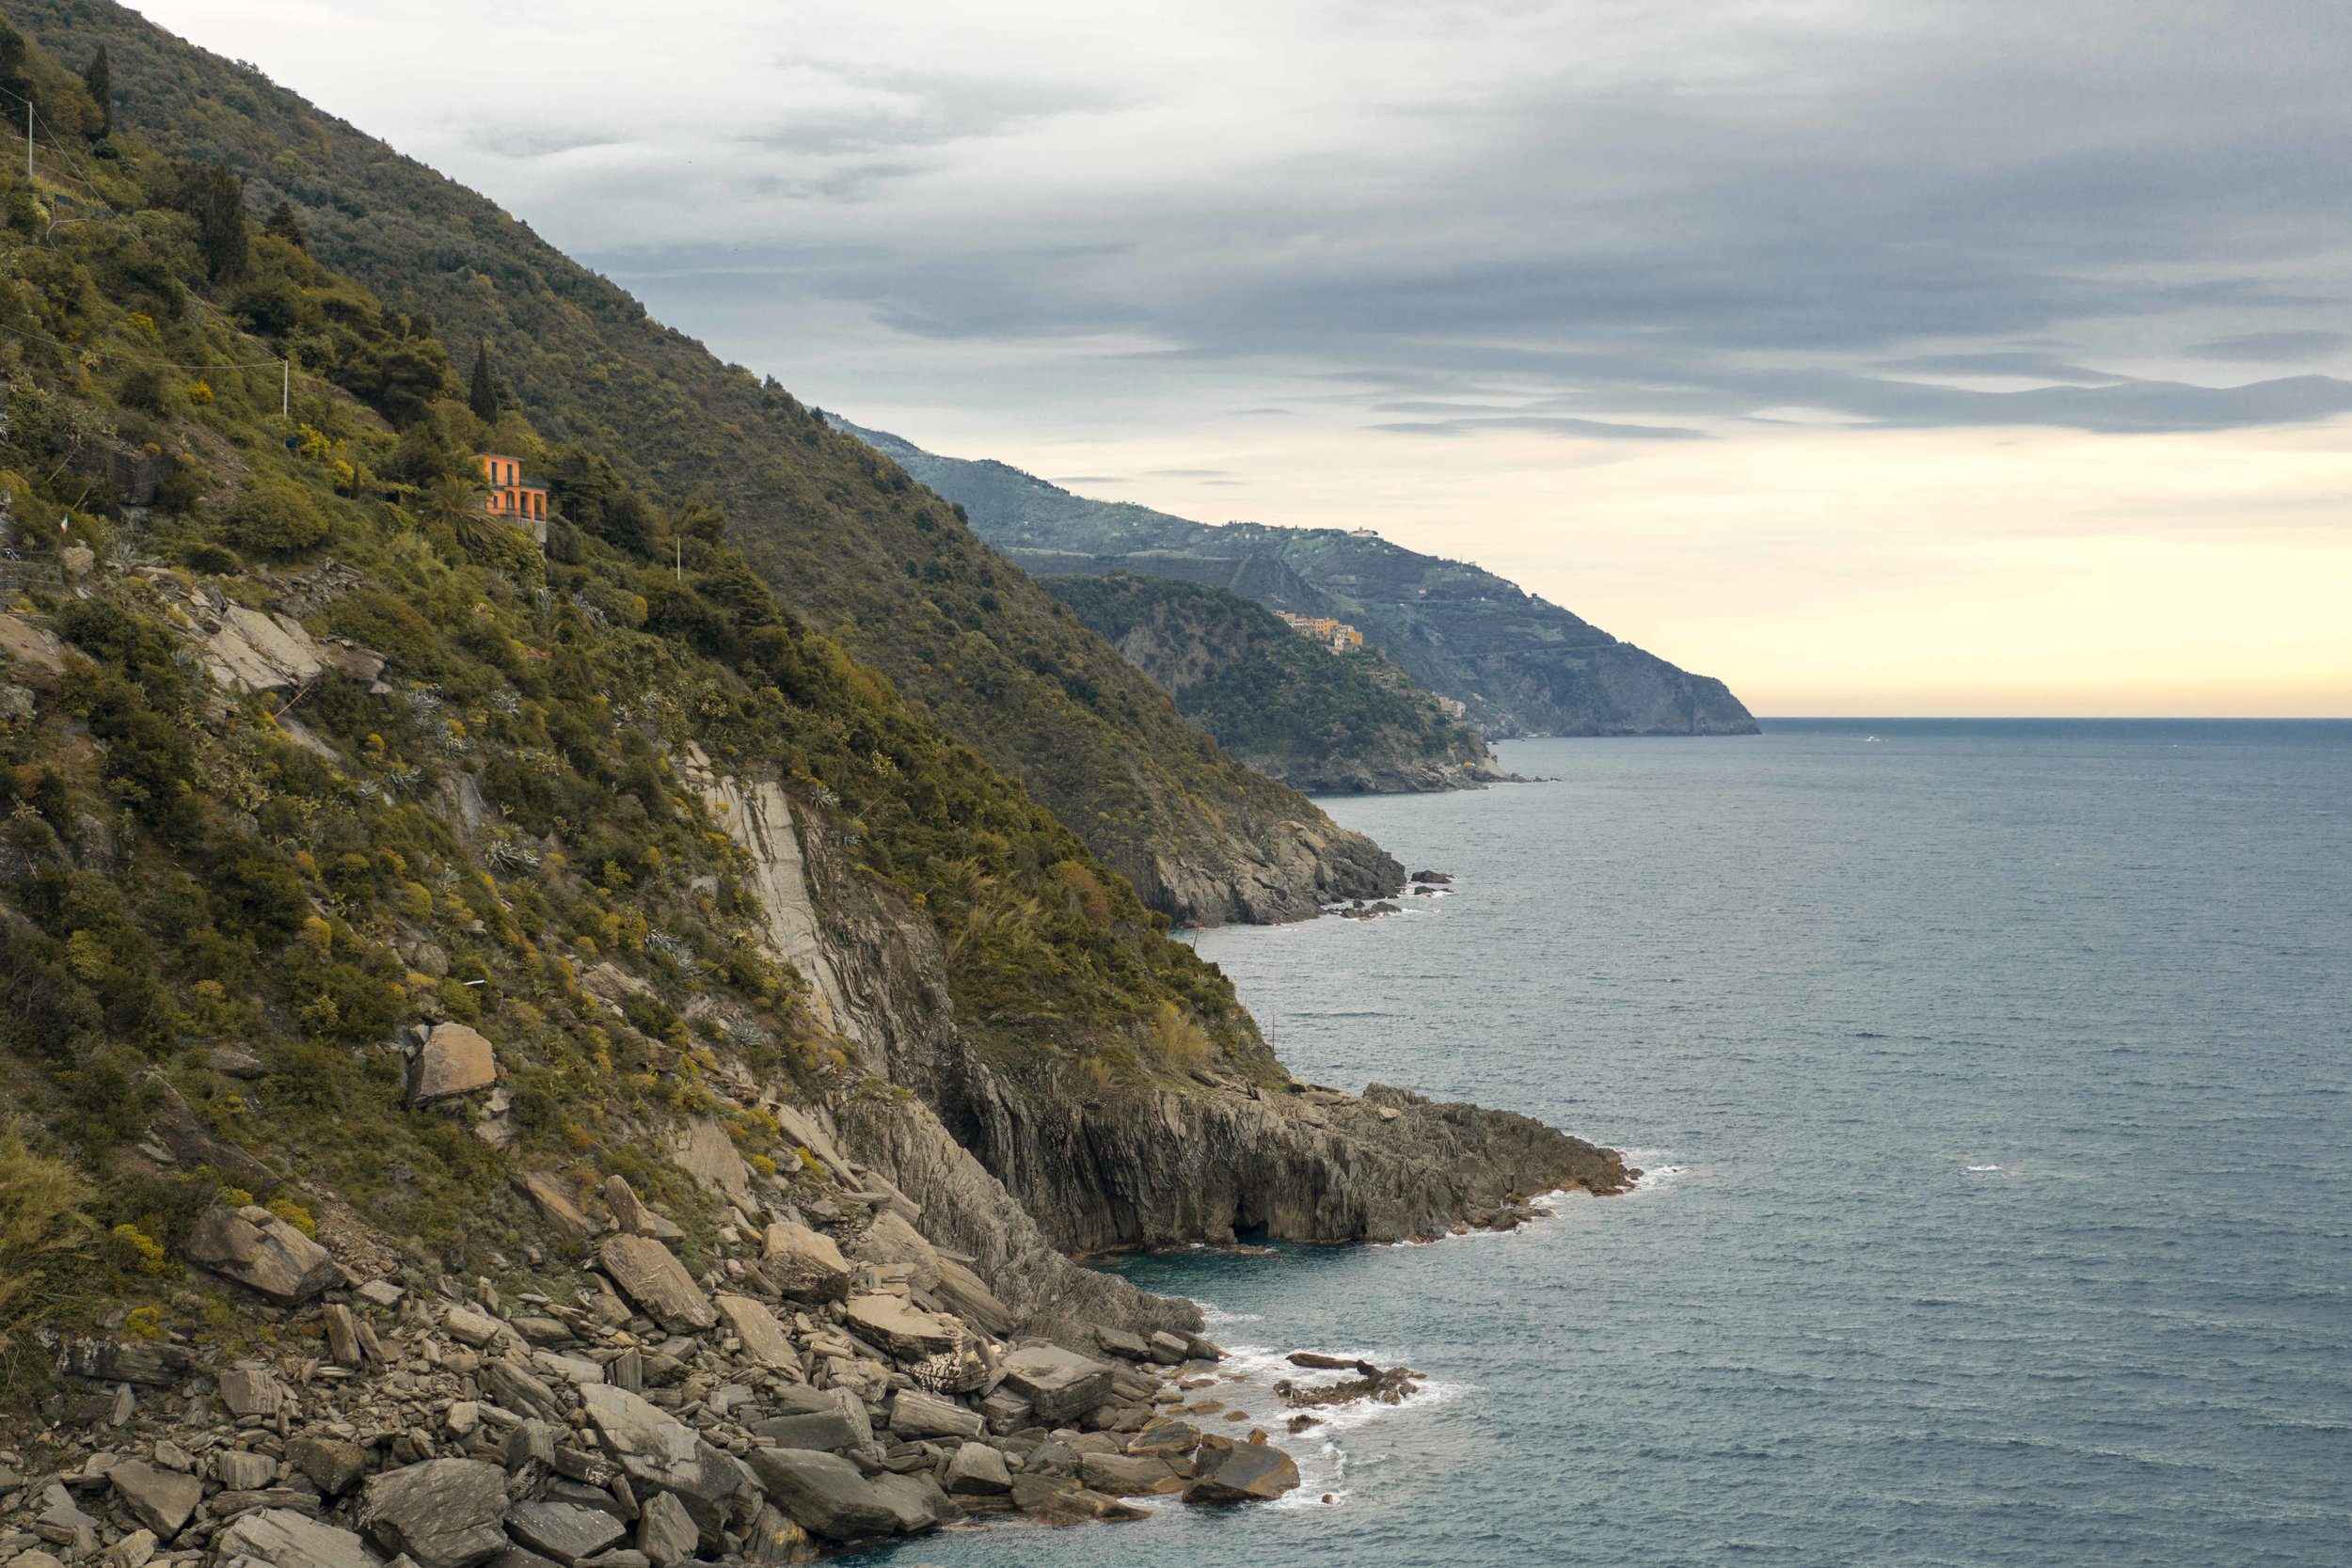 Holiday in Italy - Day 7 Cinque Terre Vernazza - Sony A7R2 -- 39.jpg